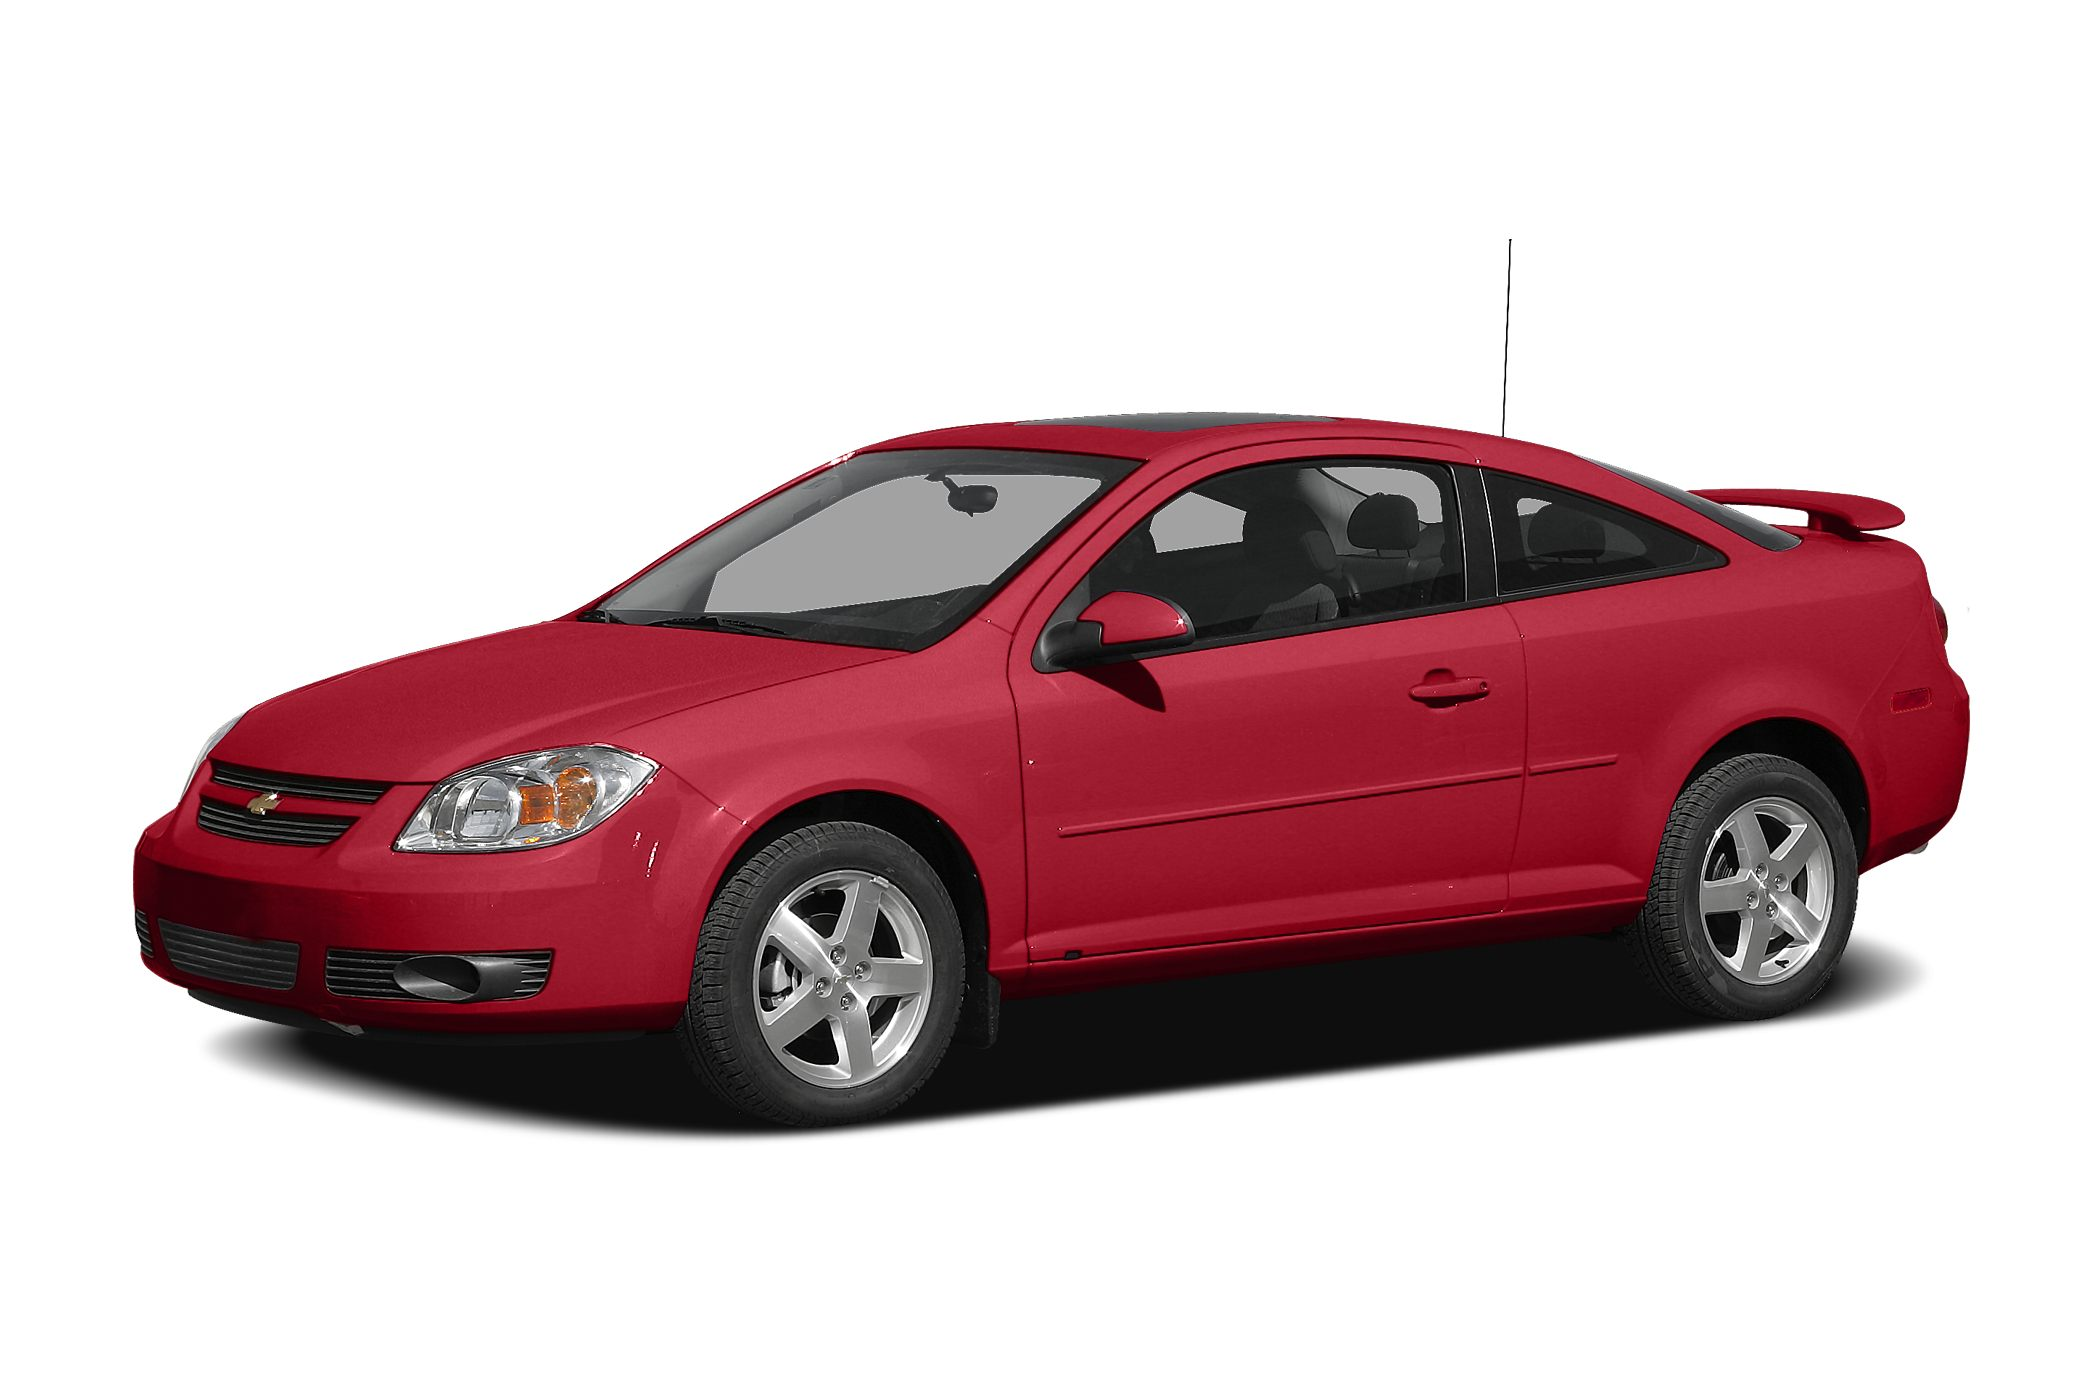 2008 Chevrolet Cobalt Sport Snatch a deal on this 2008 Chevrolet Cobalt Sport before someone else